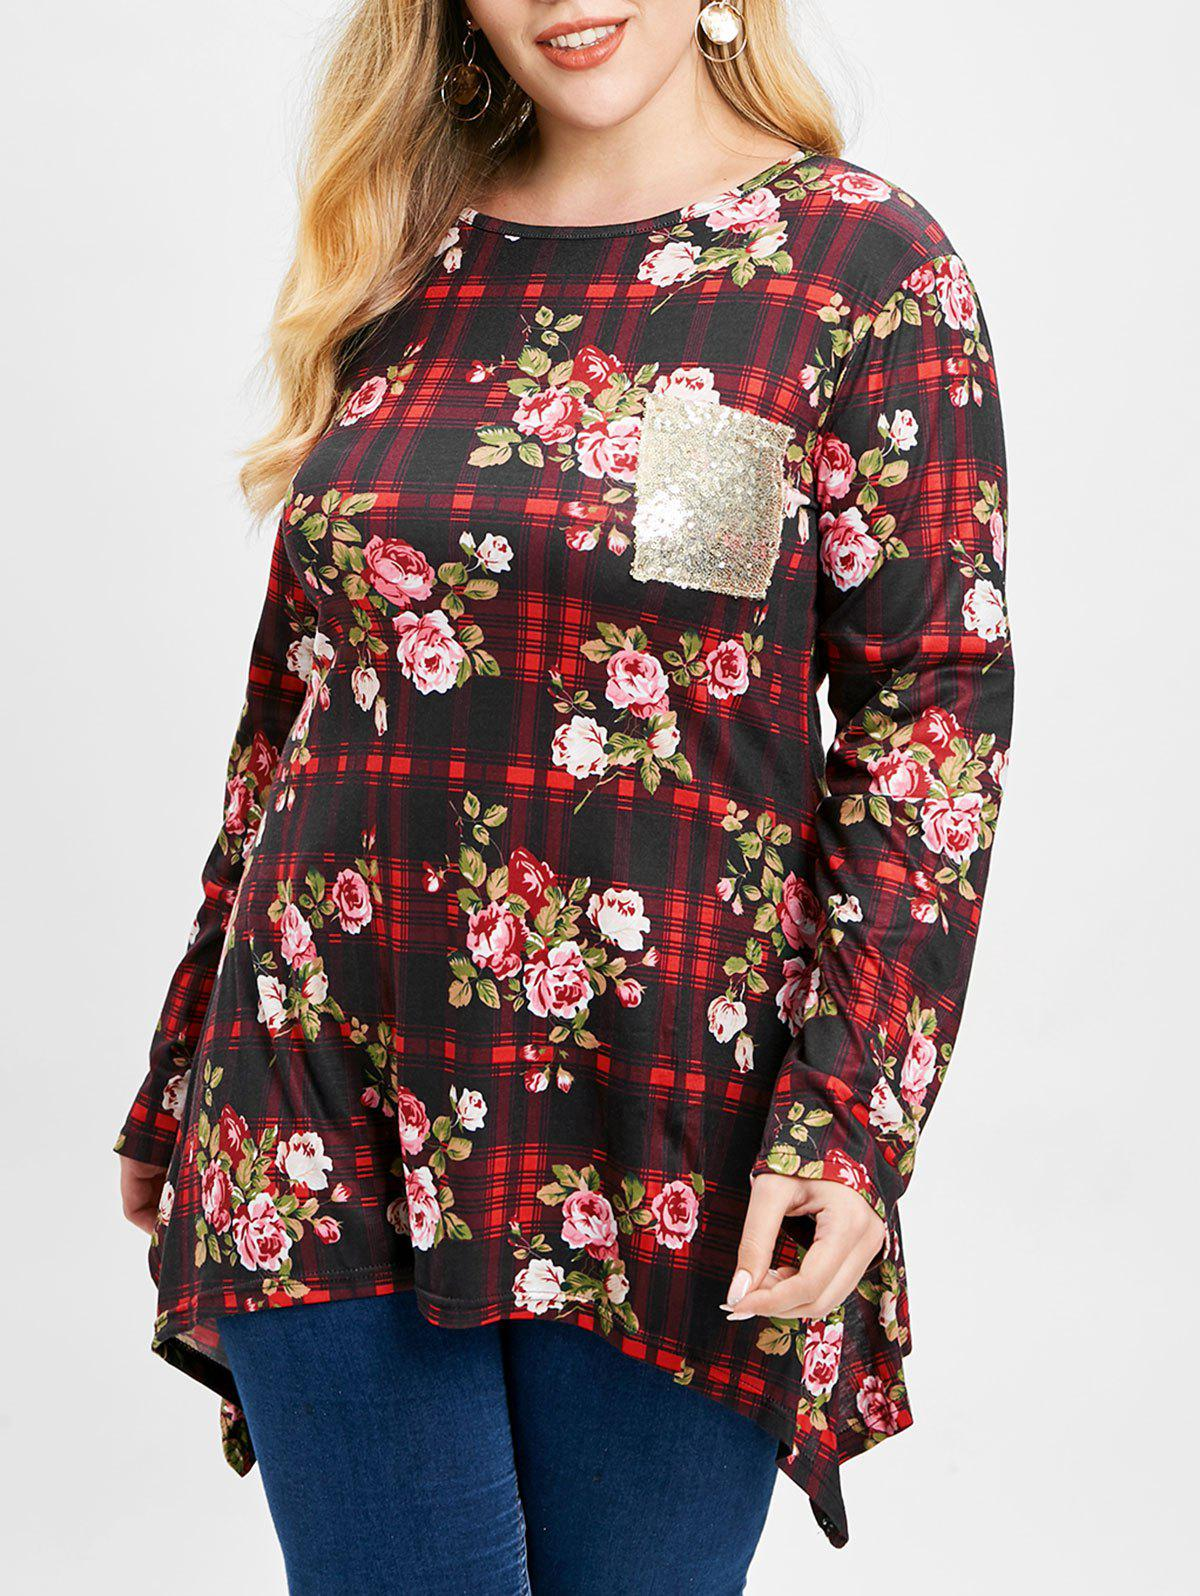 Plus Size Floral Print Plaid T-shirt - multicolor 3X